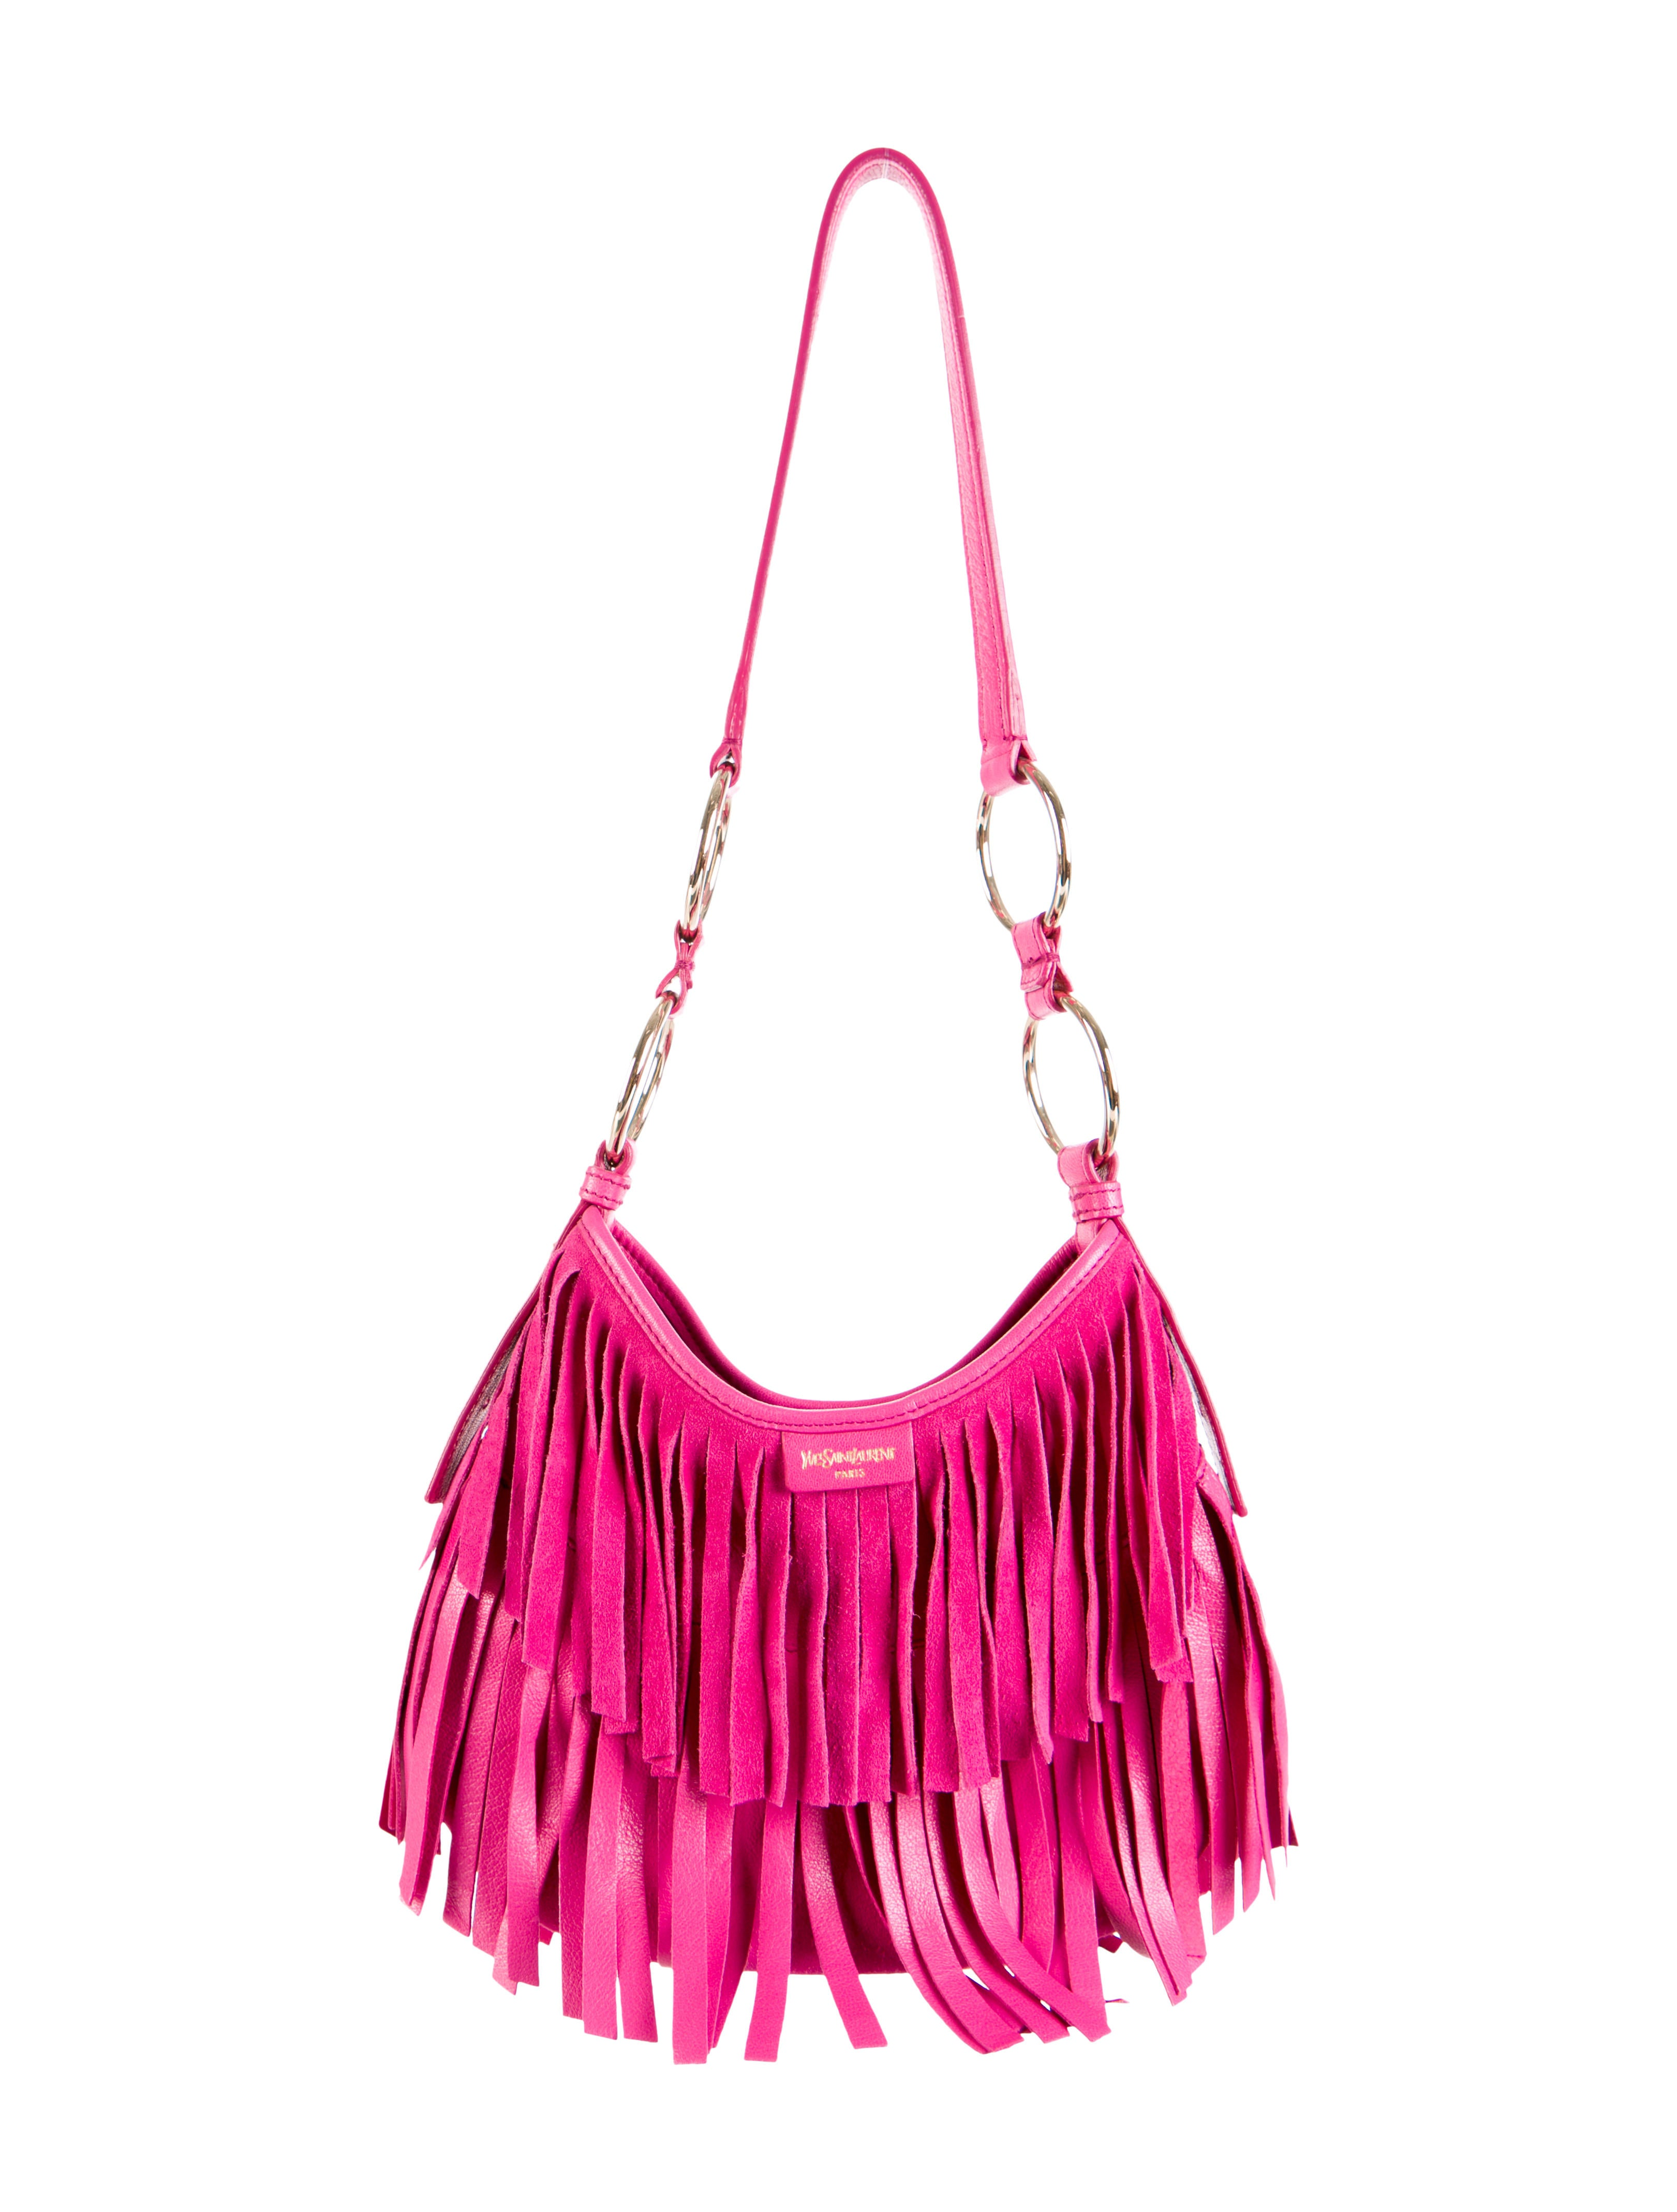 ysl cabas bag price - yves saint laurent la boheme fringe hobo, ysl look alike shoes